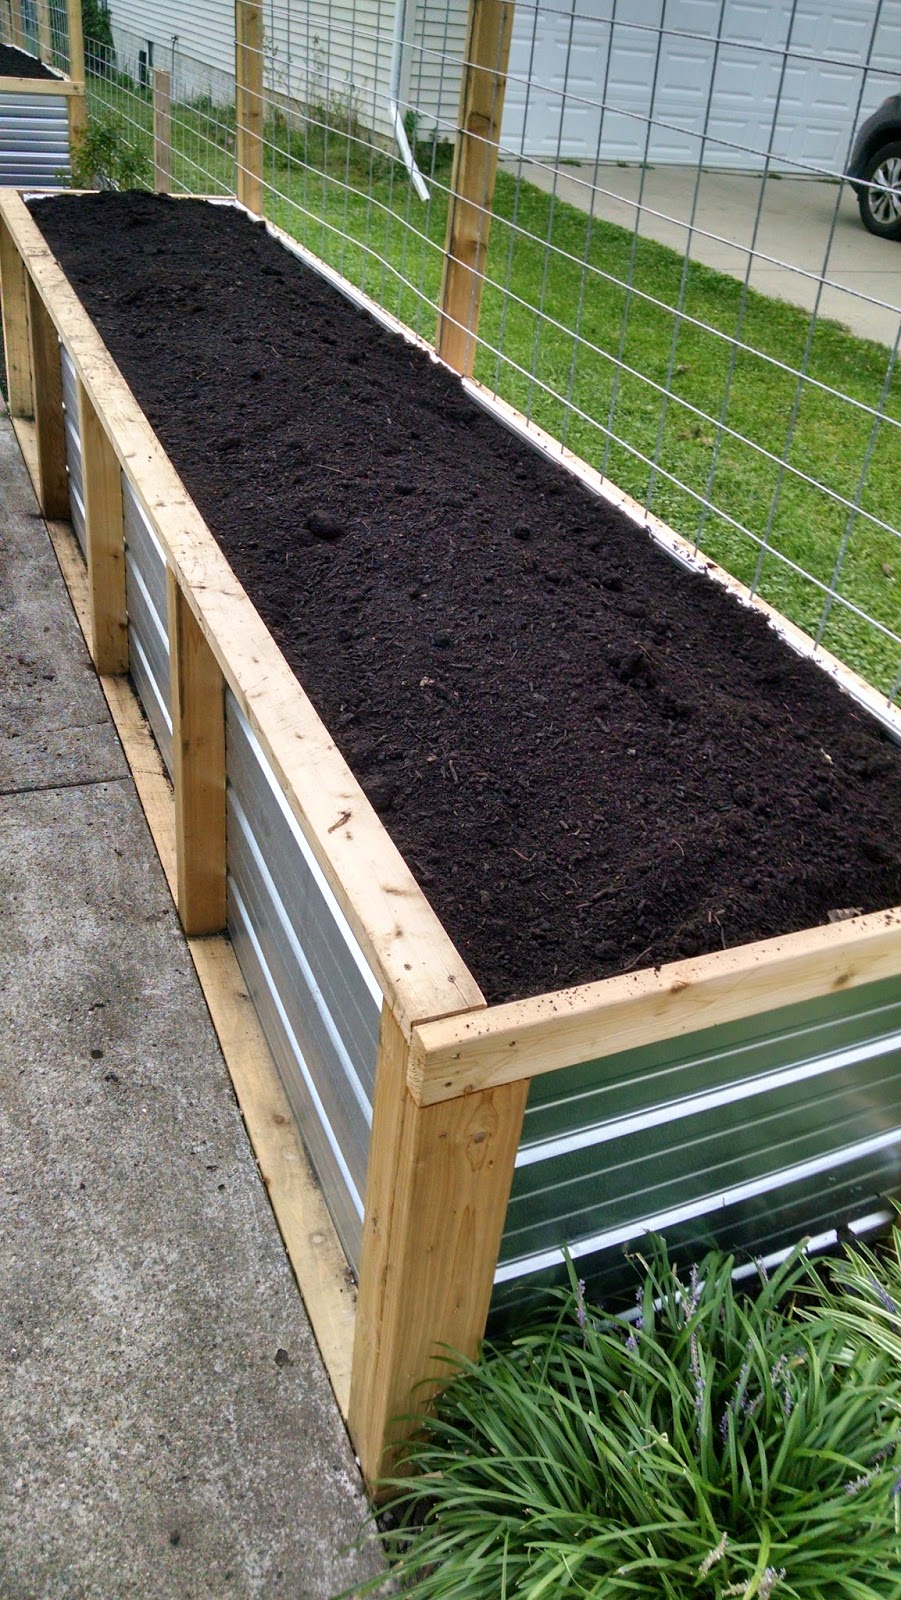 Abundant Design Raised Beds of Steel with a Hugelkultur